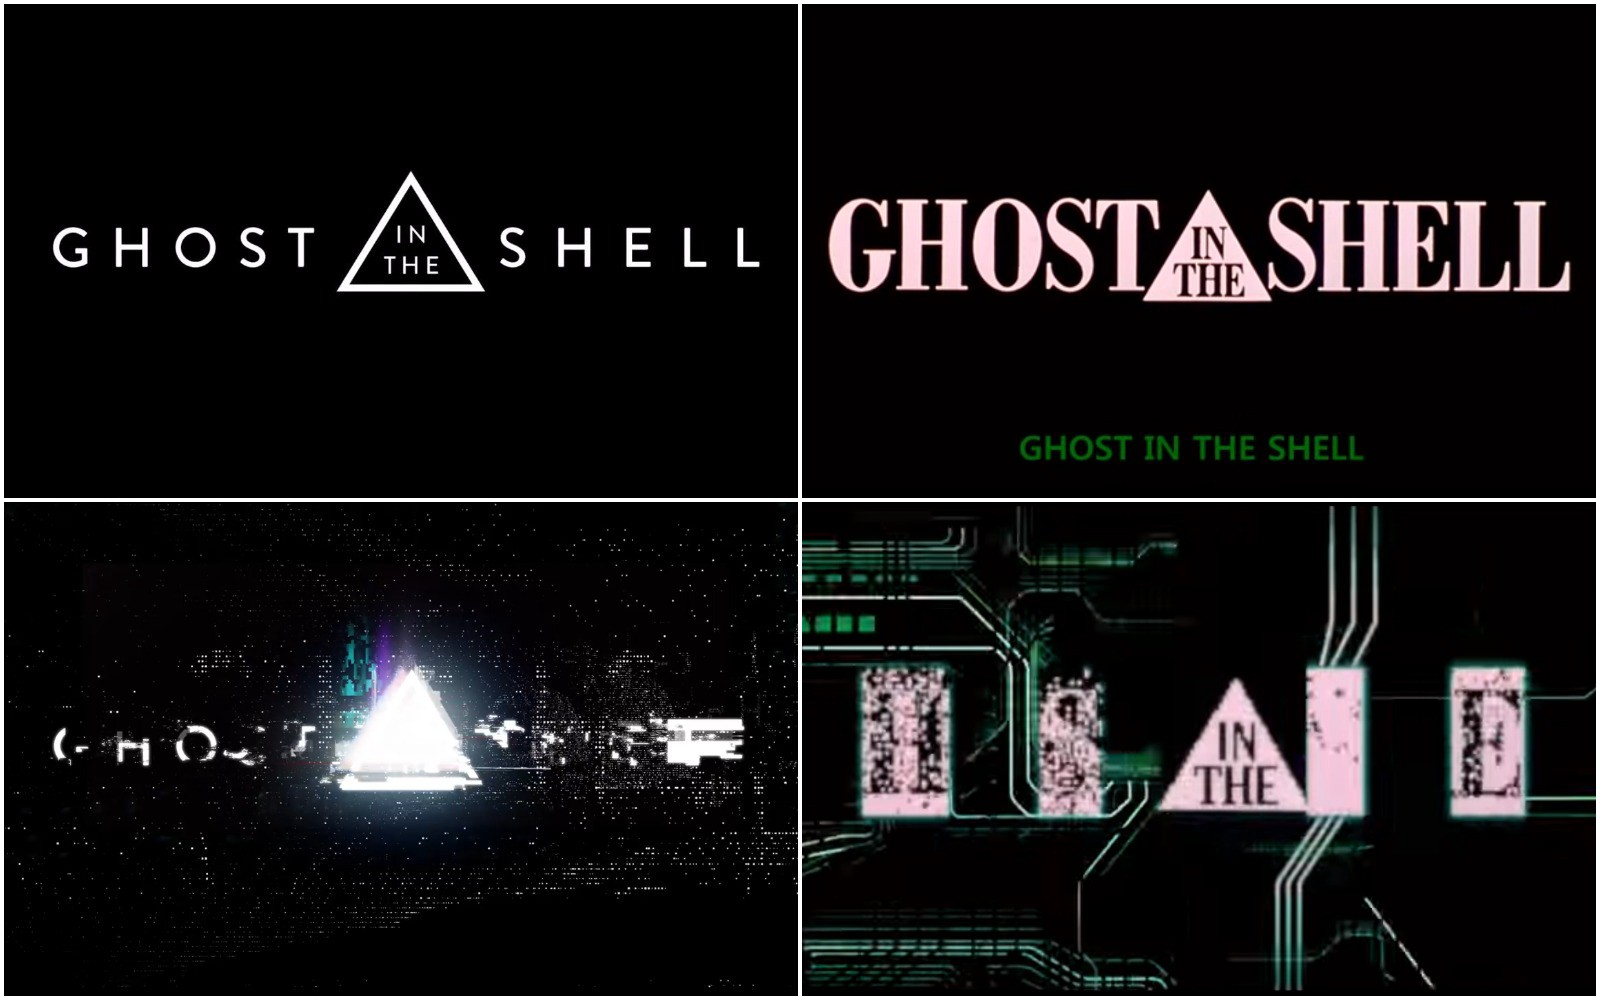 A Love Letter To Ghost In The Shell Images Of 30 Shots In The 2017 Movie Recreated From The Anime By Ghost In The Shell Ost Campaign Gitsost Medium